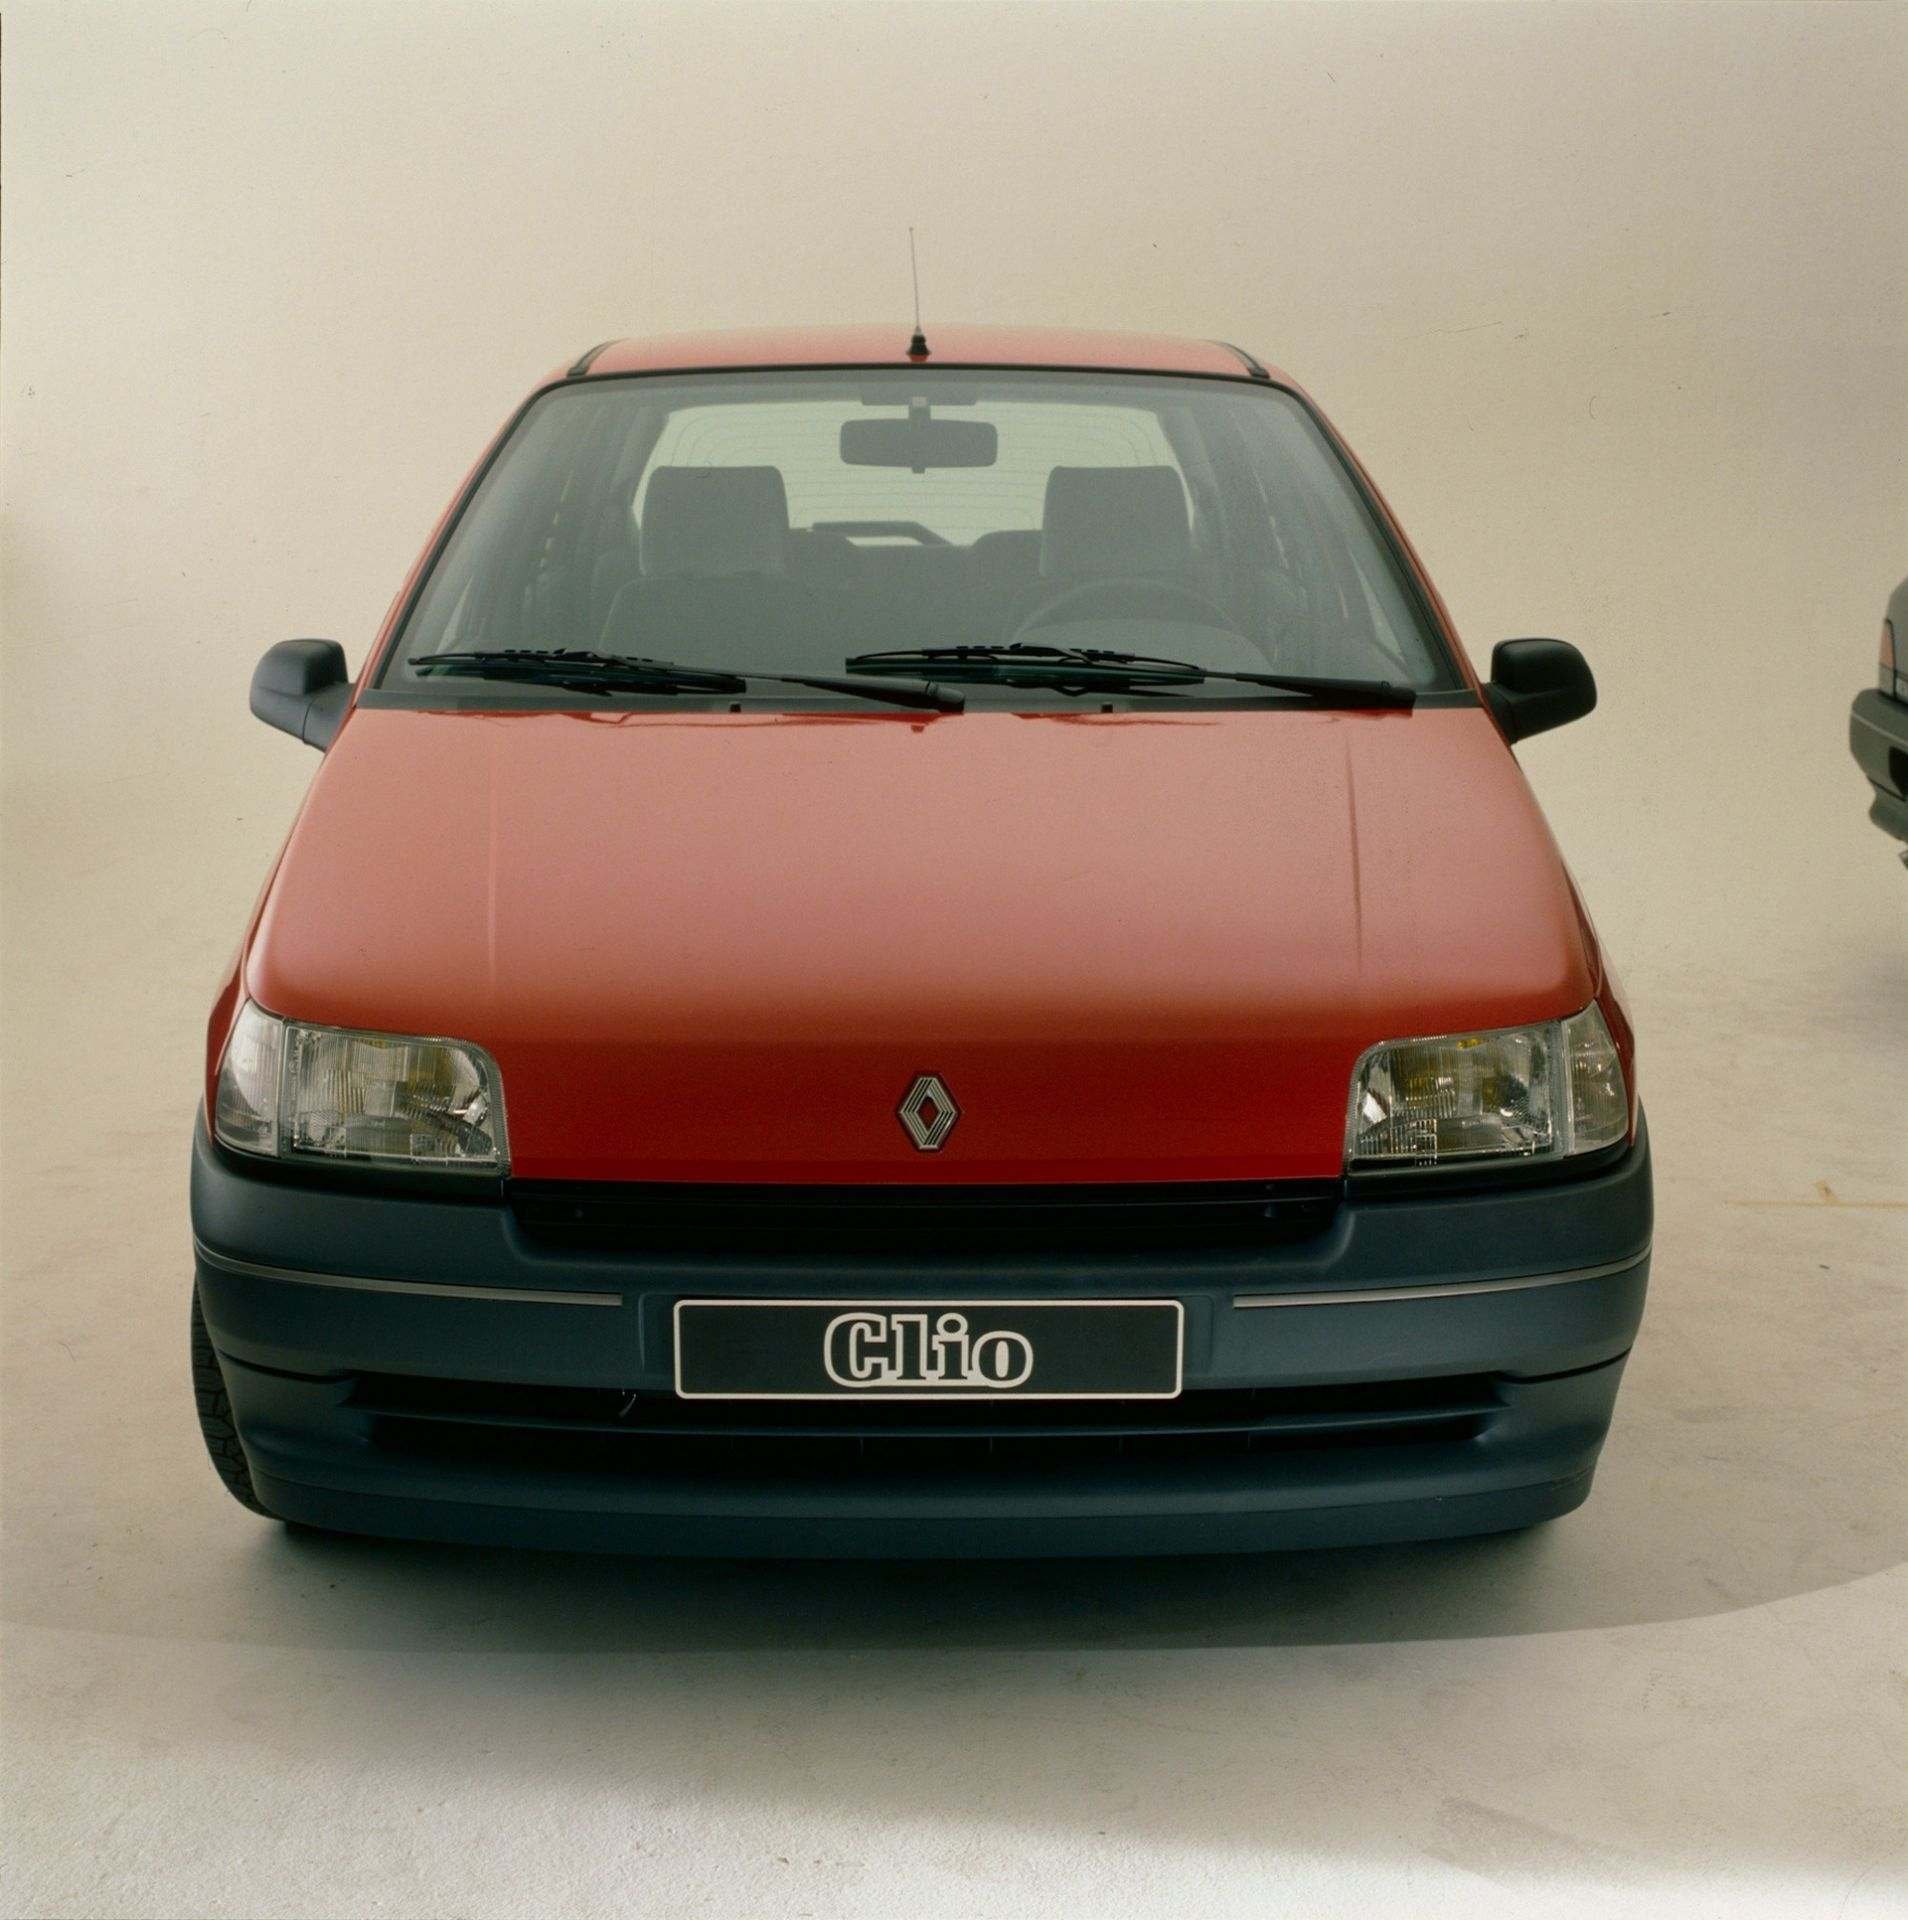 2020-30-years-of-Renault-CLIO-Renault-CLIO-I-1990-1999-5